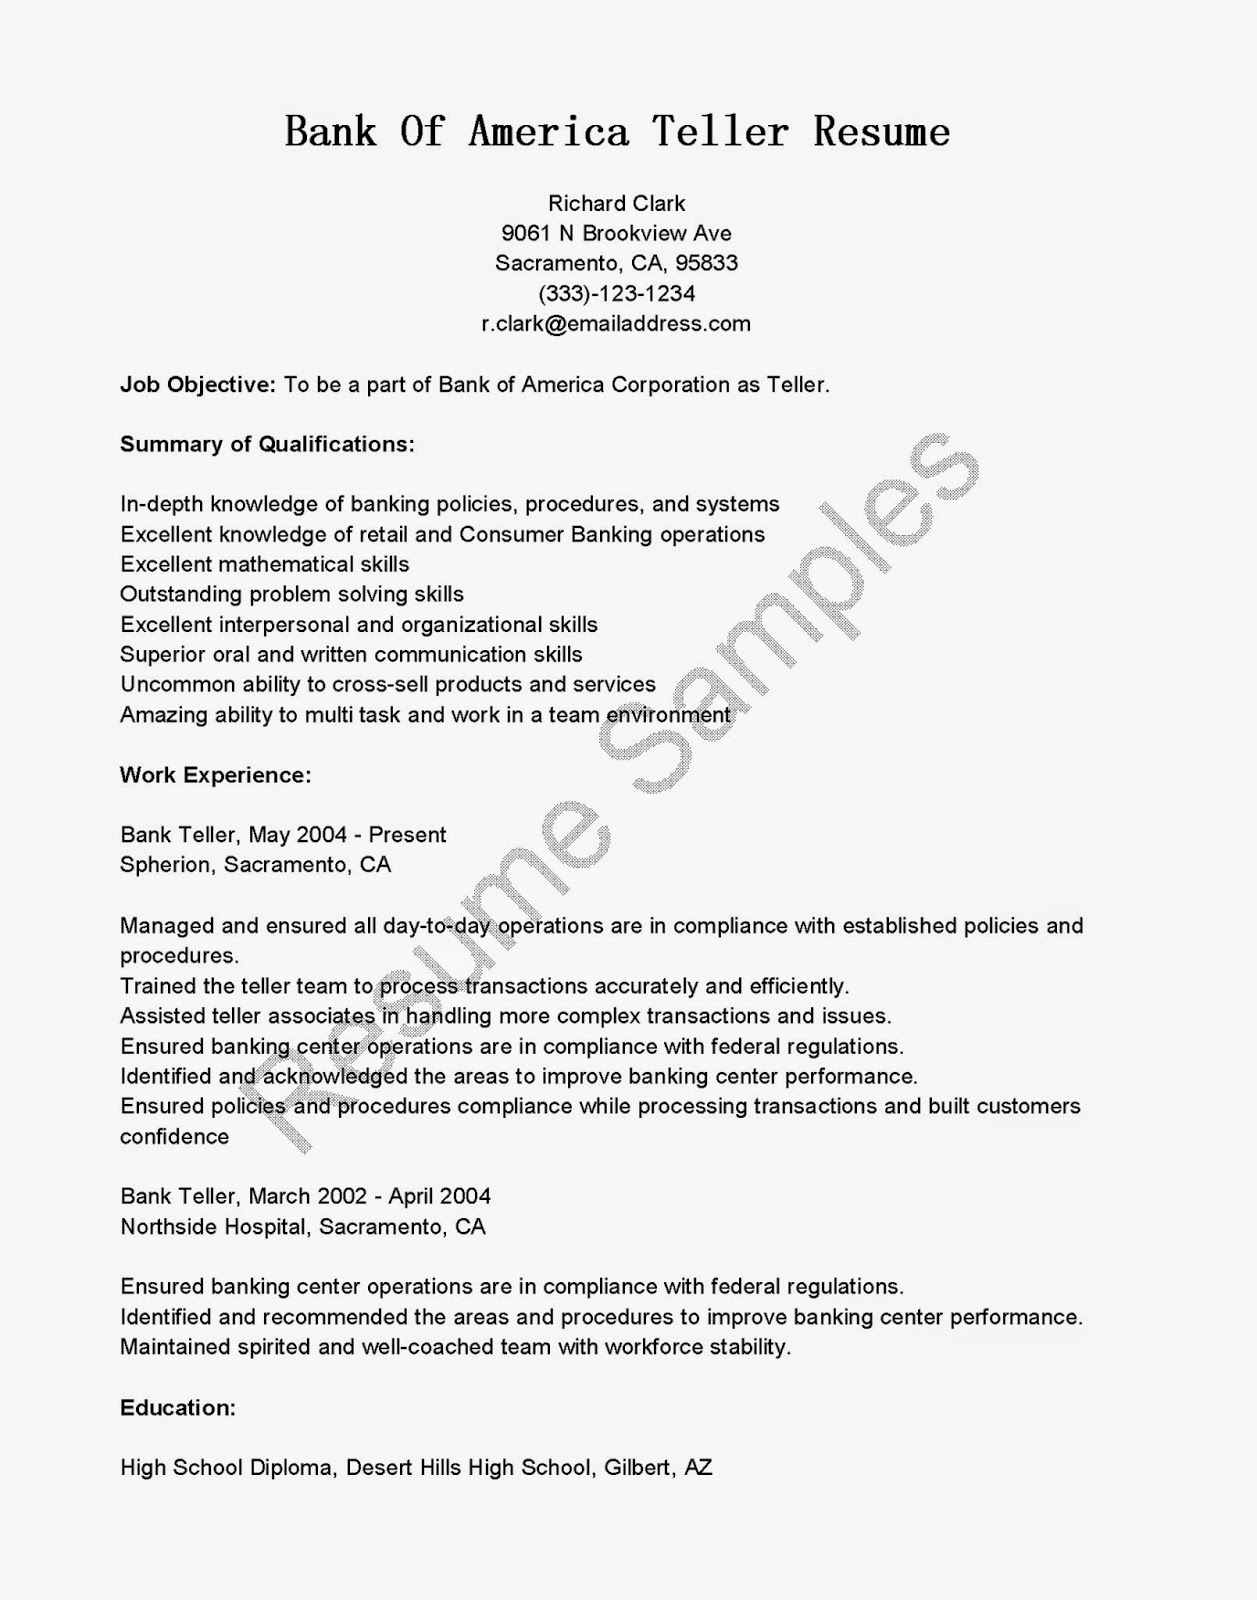 sample resume resume samples bank of america teller resume sample